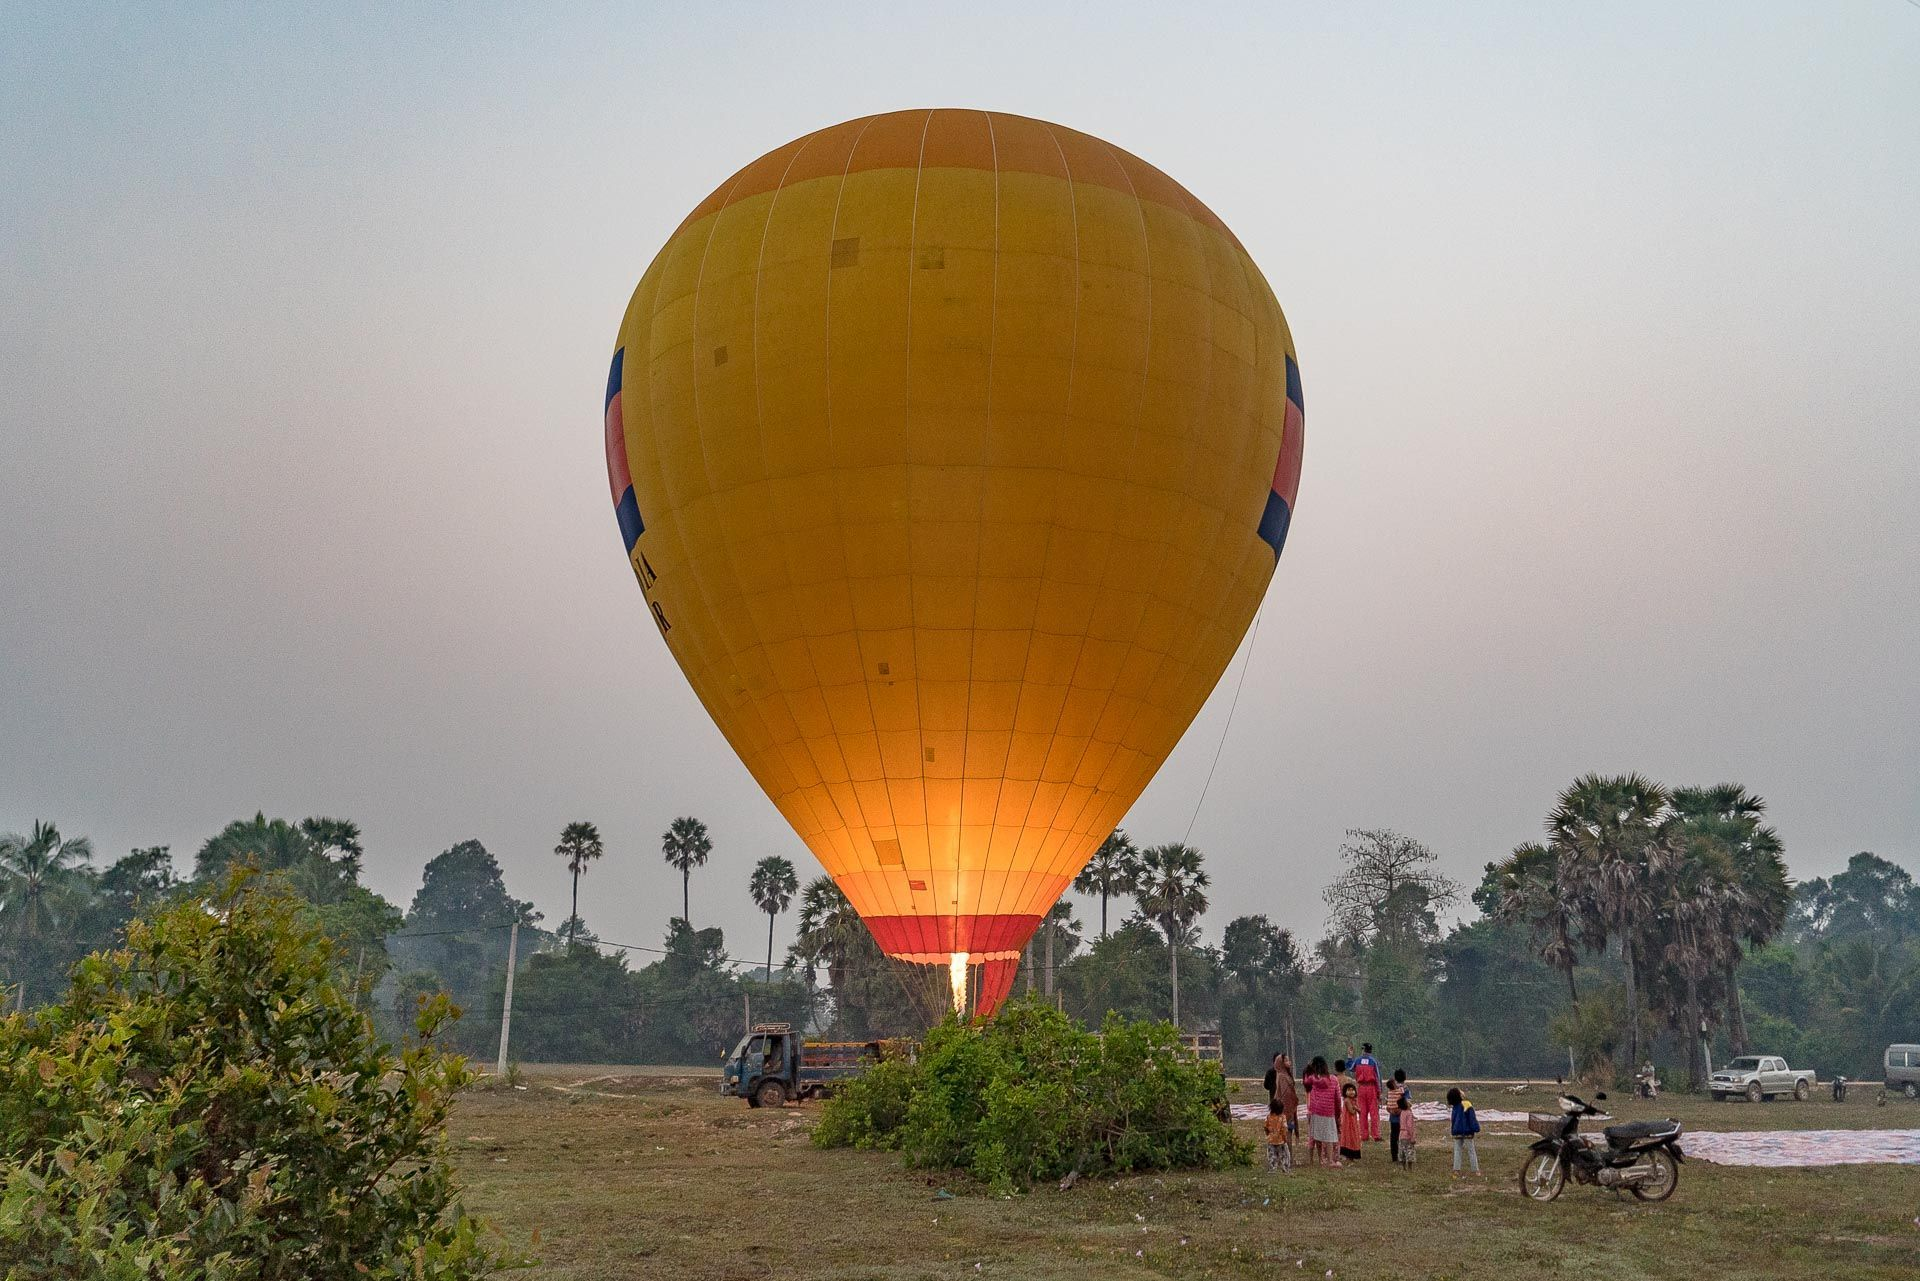 Lesvoyageuses-guide-voyage-siem-reap-angkor-cambodge-montgolfiere-eoasia-4